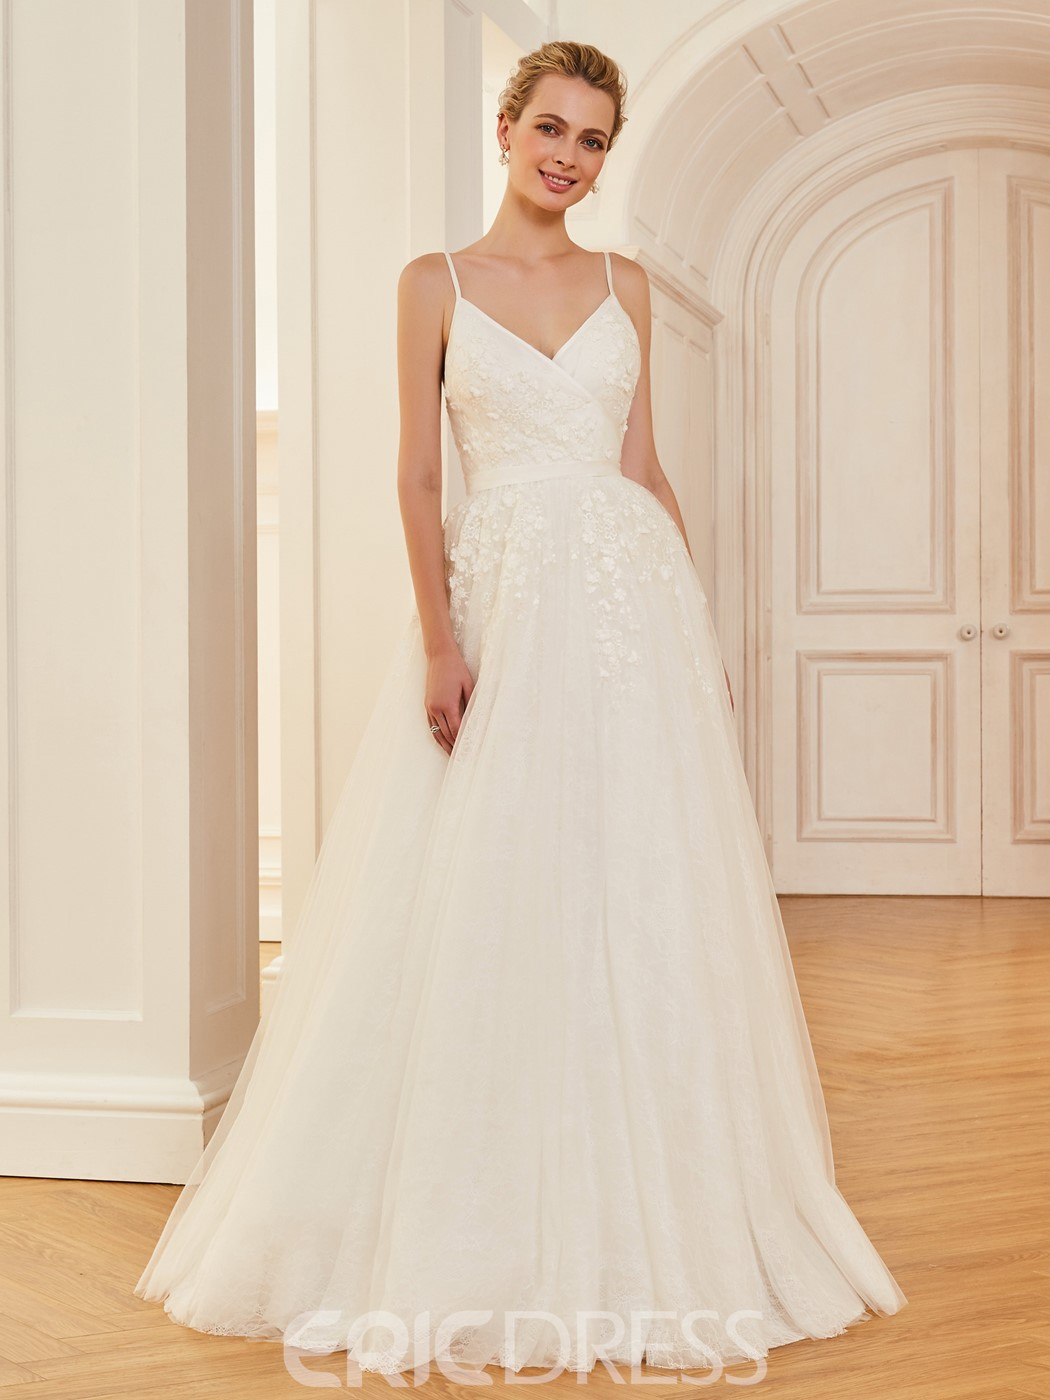 Ericdress Spaghetti Straps Appliques A Line Tulle Wedding Dress ...